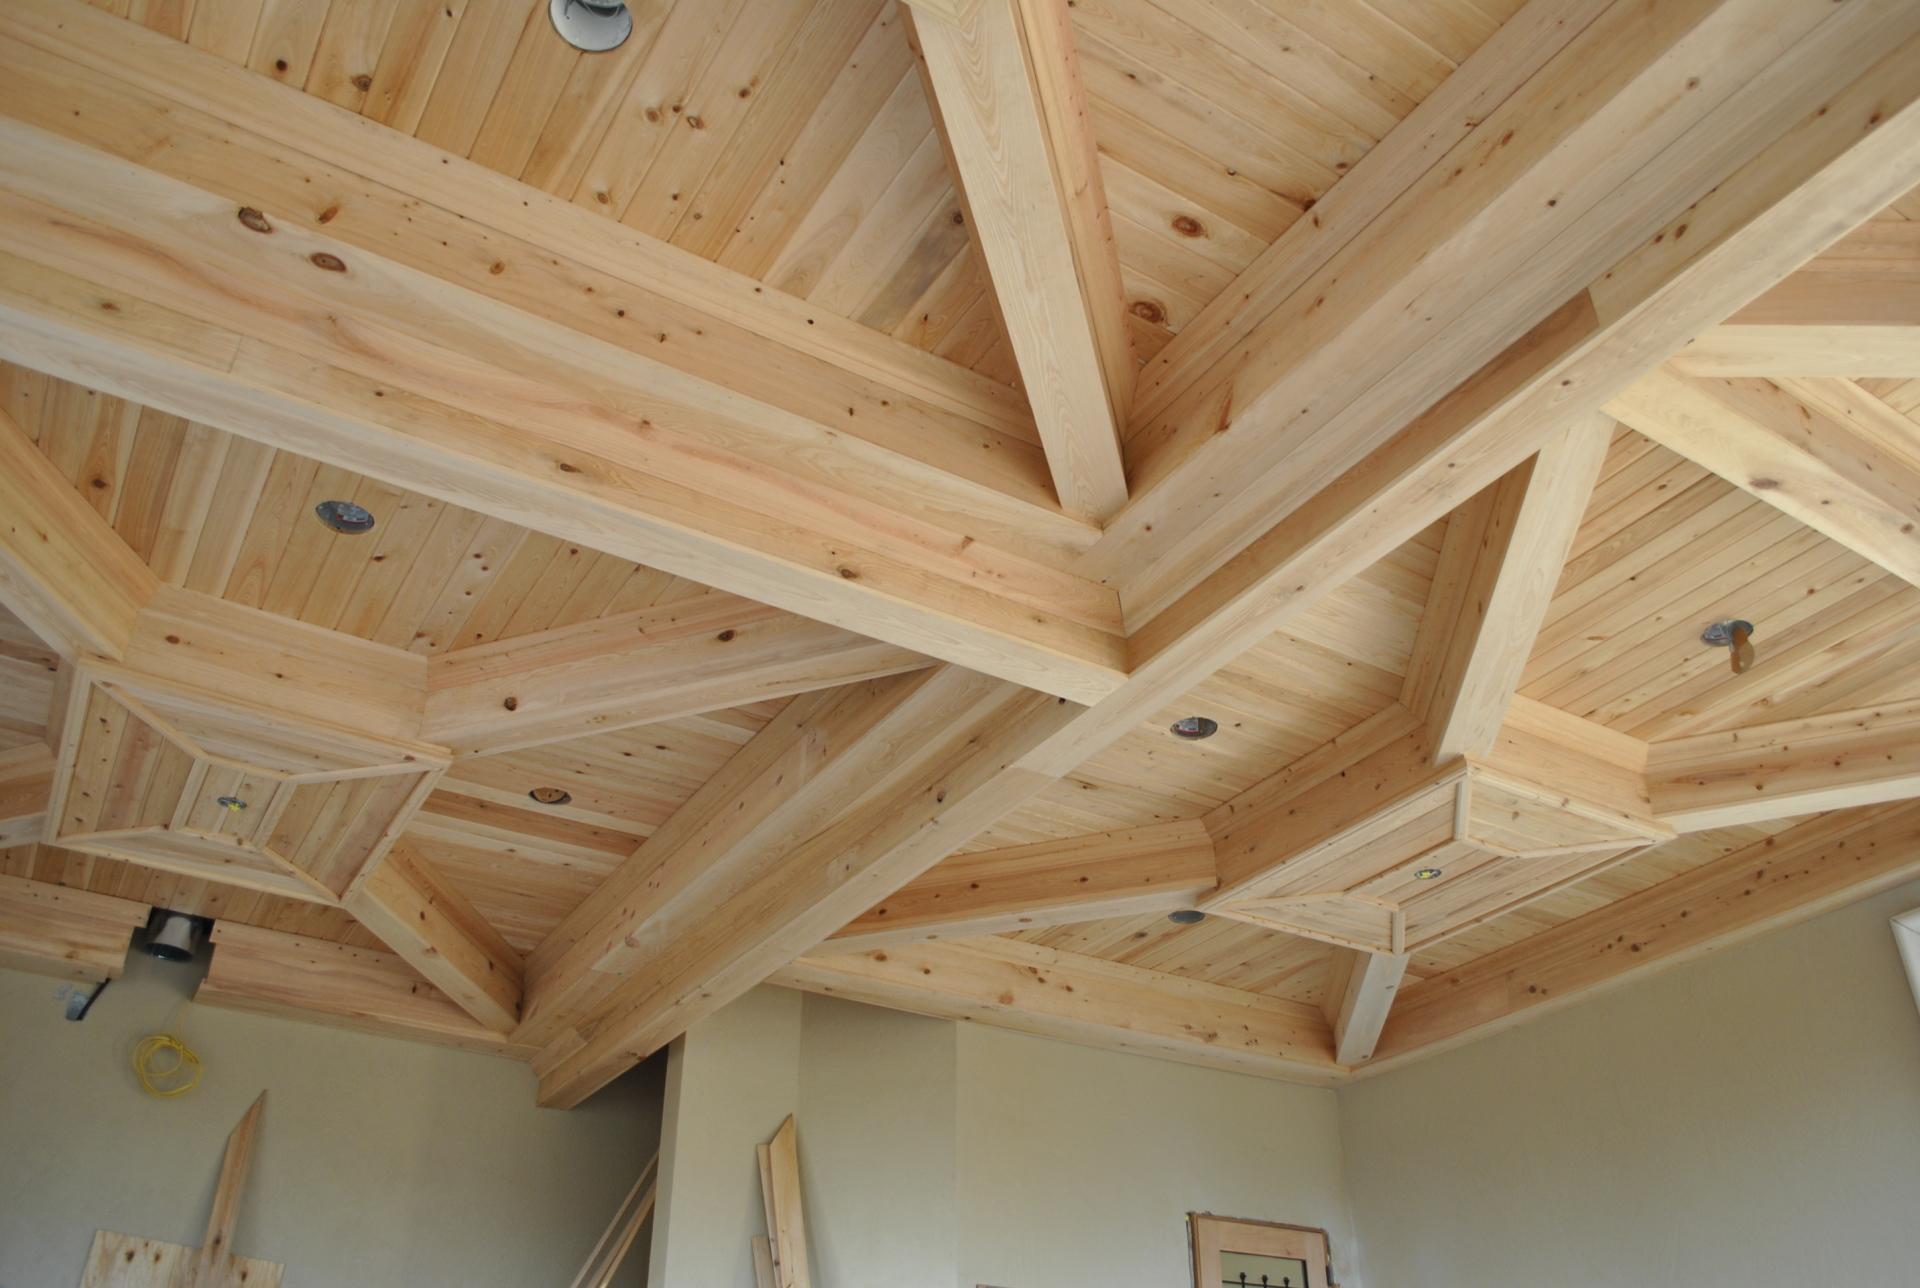 Pine Beams and Ceiling Treatment